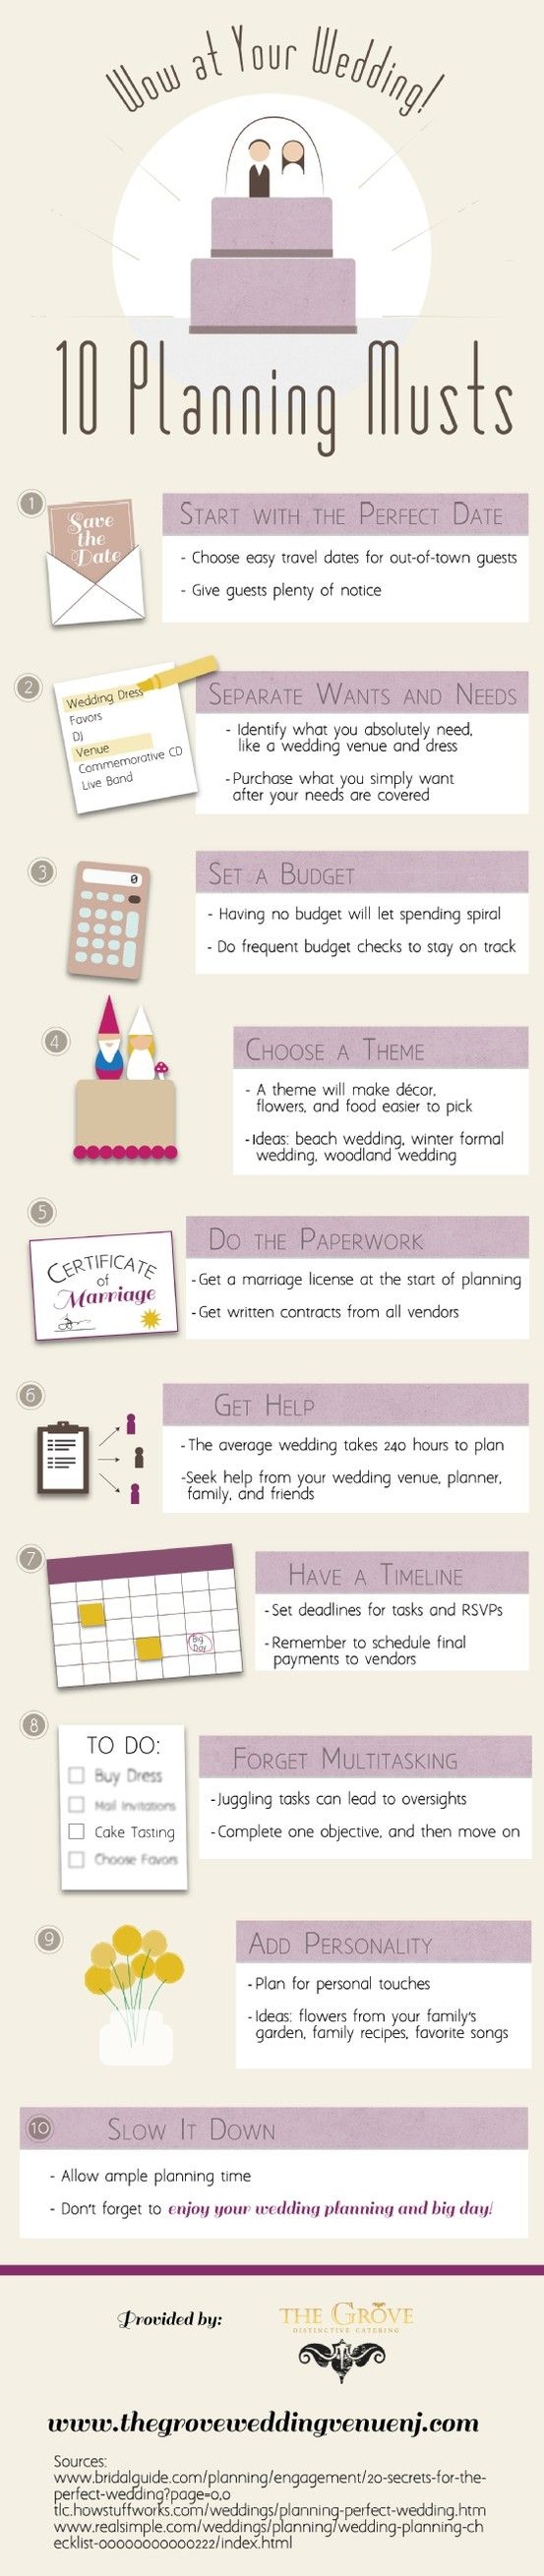 Best 25 wedding budget planner ideas on pinterest wedding best wedding planning advice from the pros xflitez Image collections